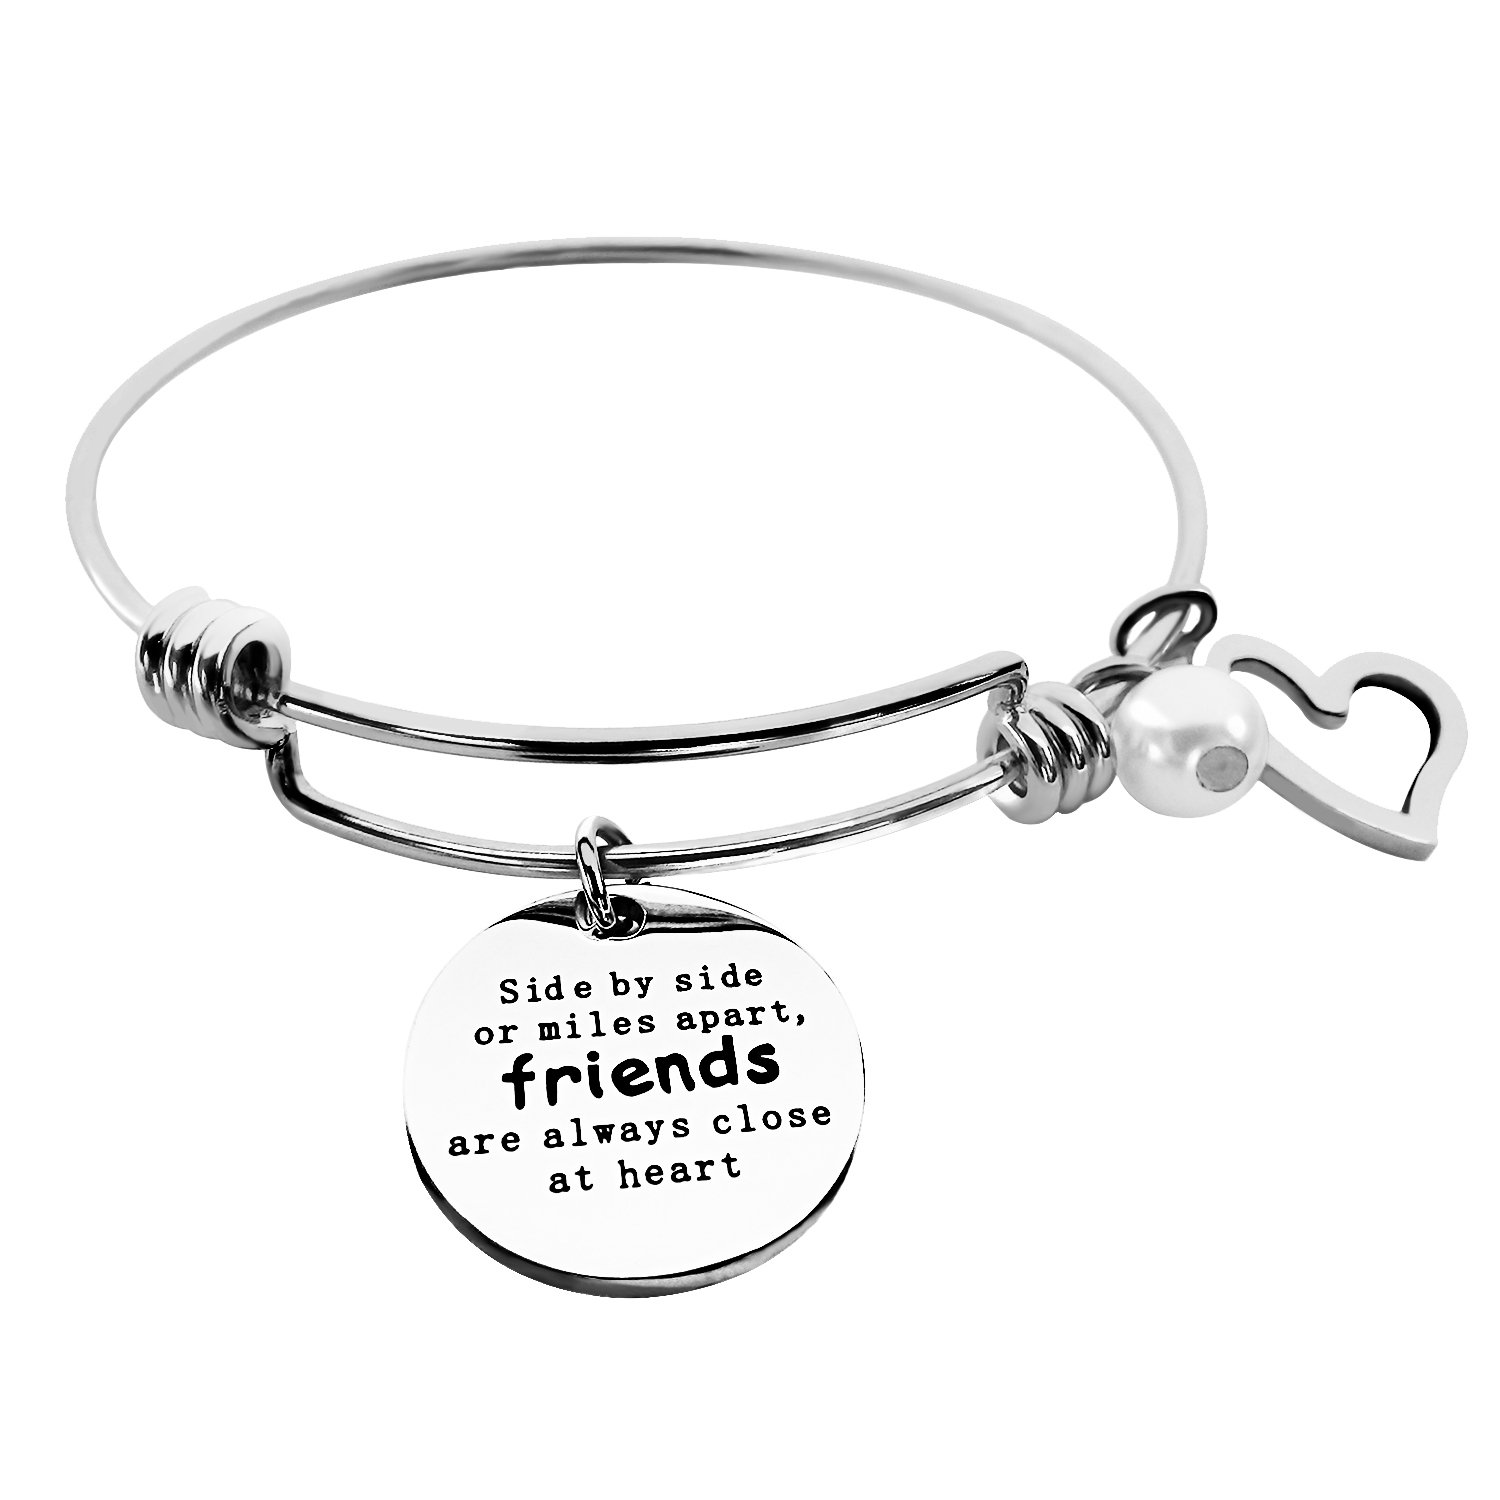 ALoveSoul Best Friends Bracelet - Side By Side Or Miles Apart Bangle - Long Distance Friendship Gifts